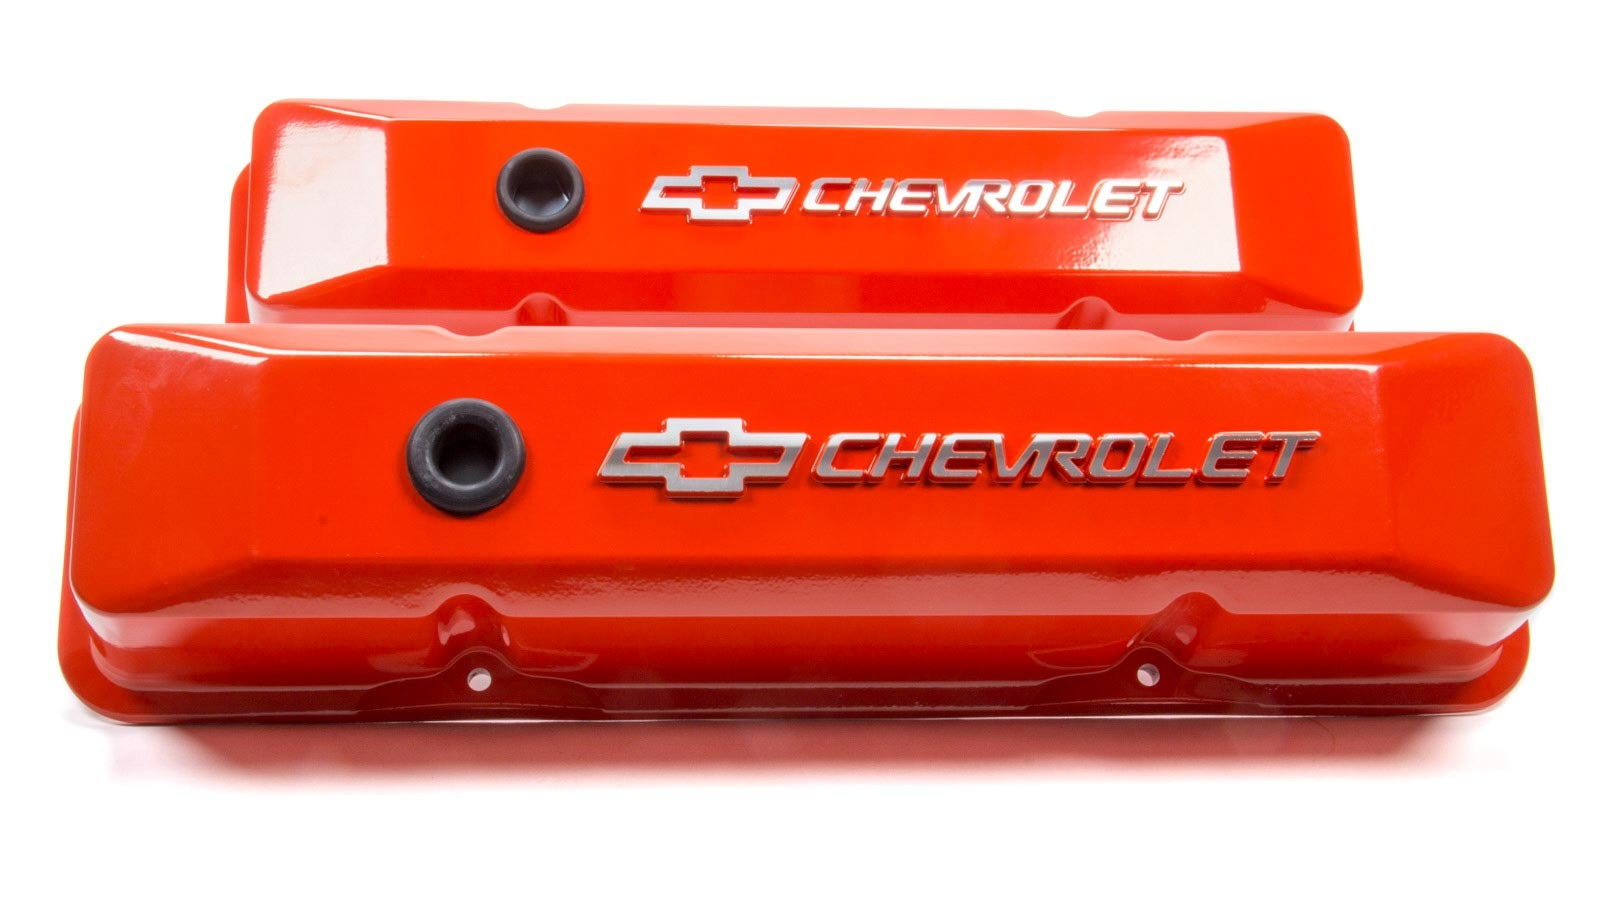 Proform 141-120 Valve Cover, Die-Cast, Tall, Baffled, Breather Hole, Raised Chevrolet Bowtie Logo, Aluminum, Orange Powder Coat, Small Block Chevy, Pair